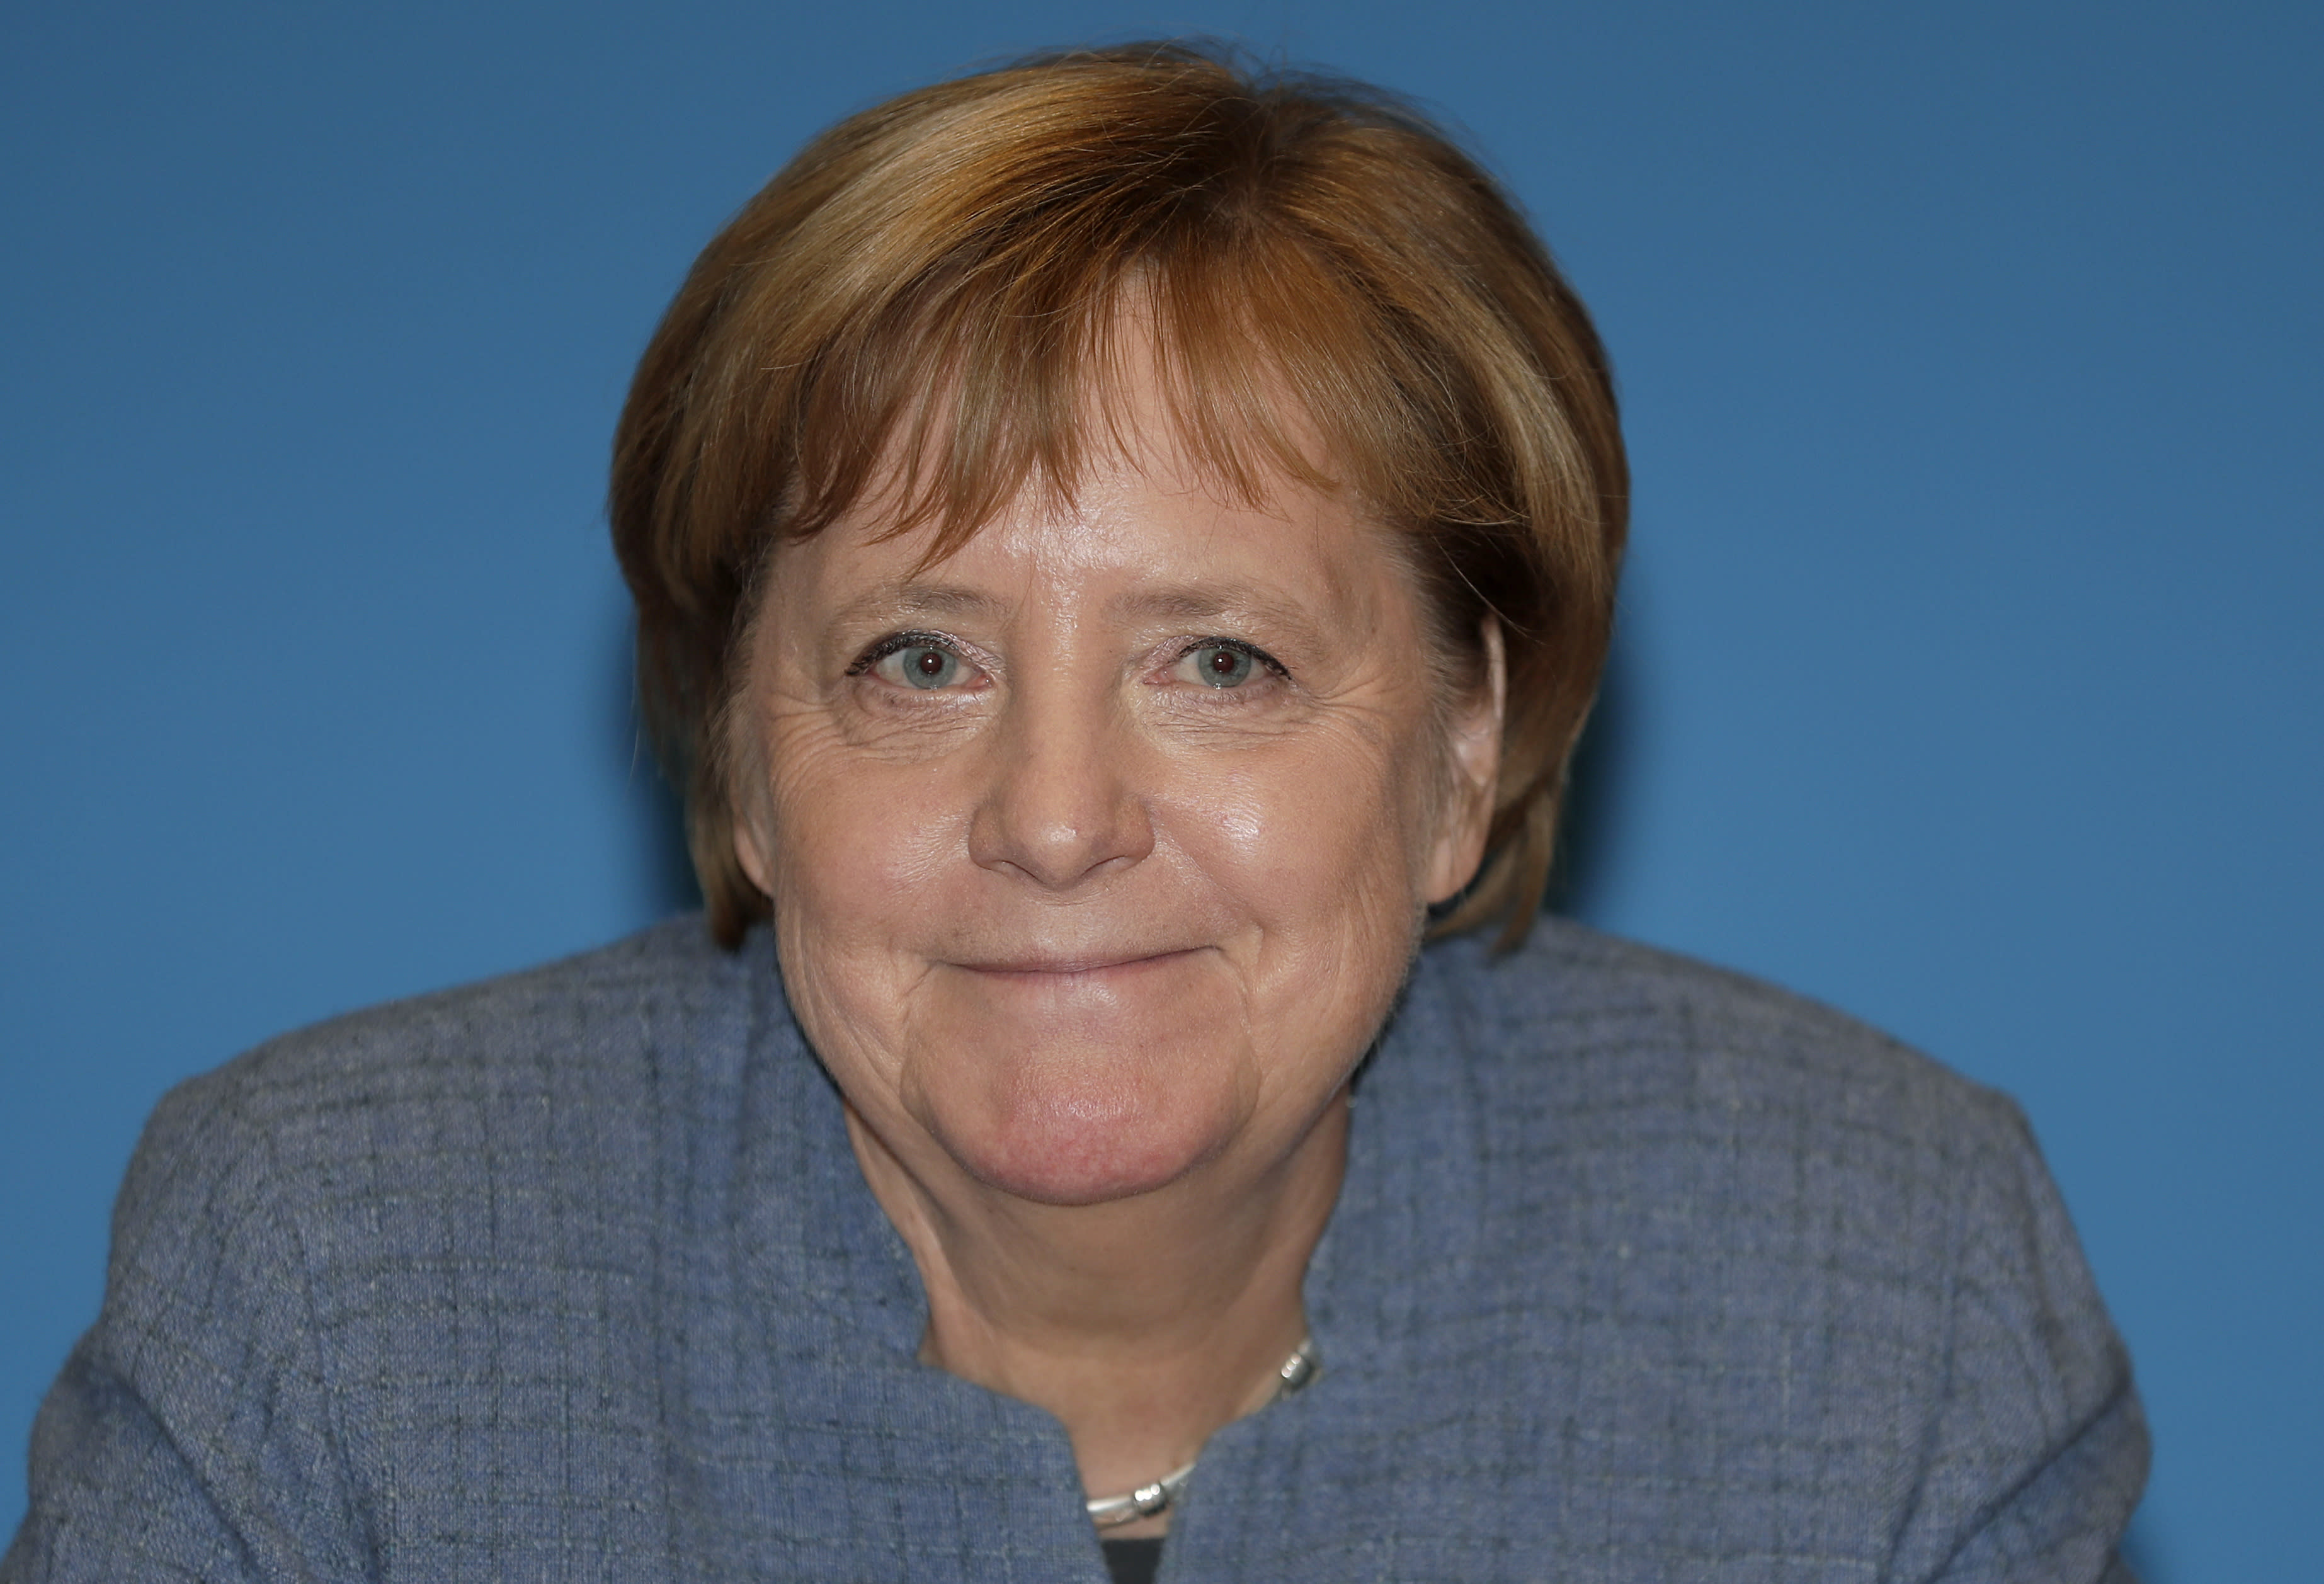 germany 39 s merkel says she can work well with any successor. Black Bedroom Furniture Sets. Home Design Ideas